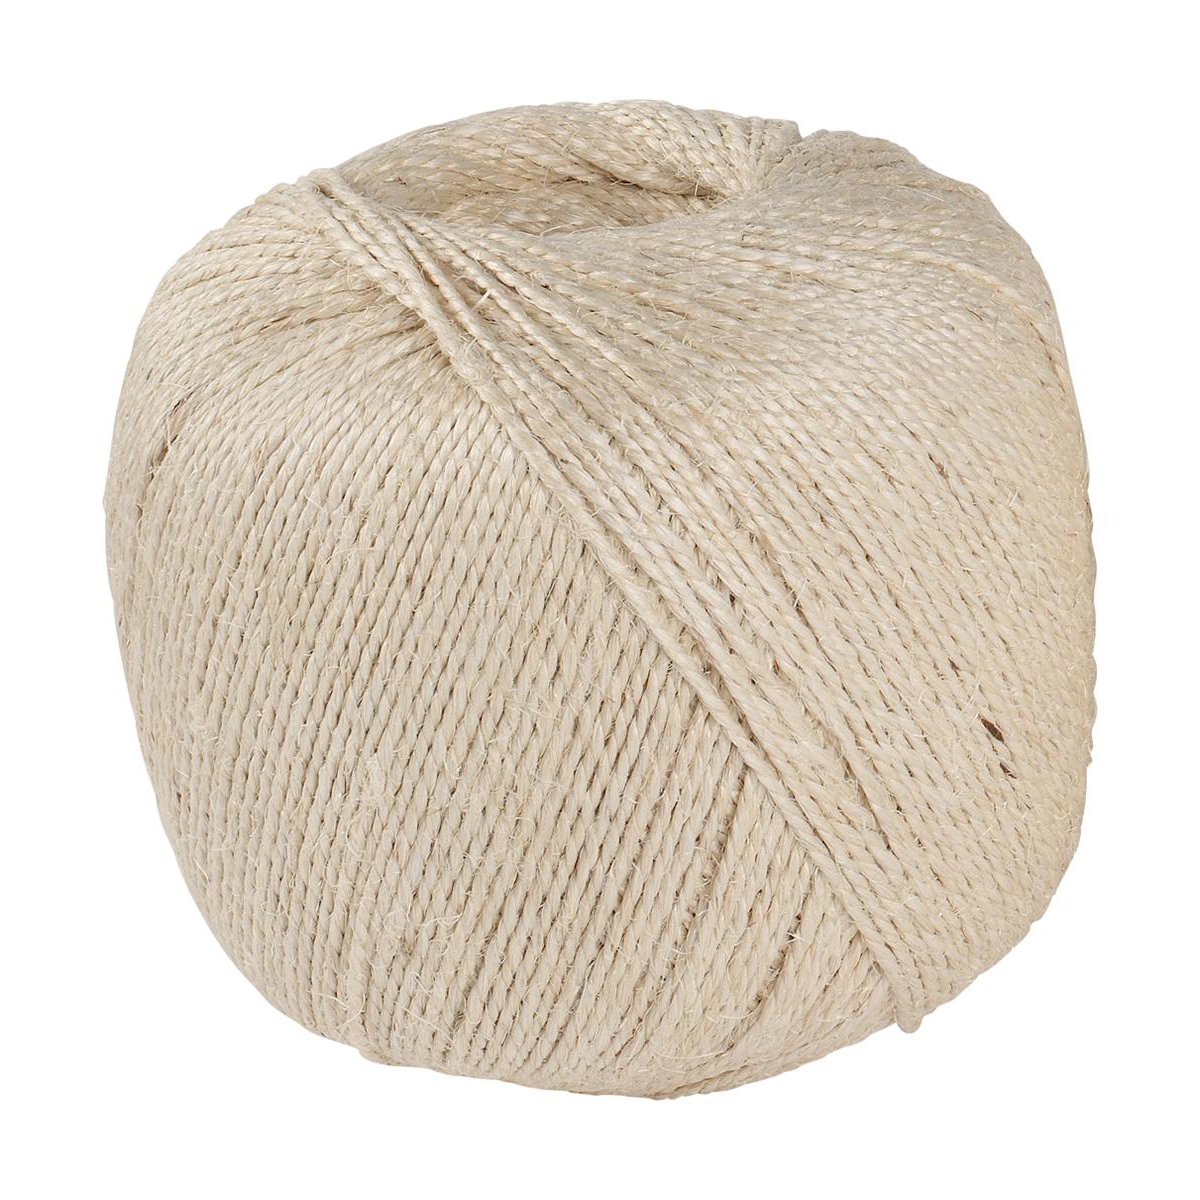 String or twine Sisal Twine Thick 2.5kg 750m White Ref 166100011